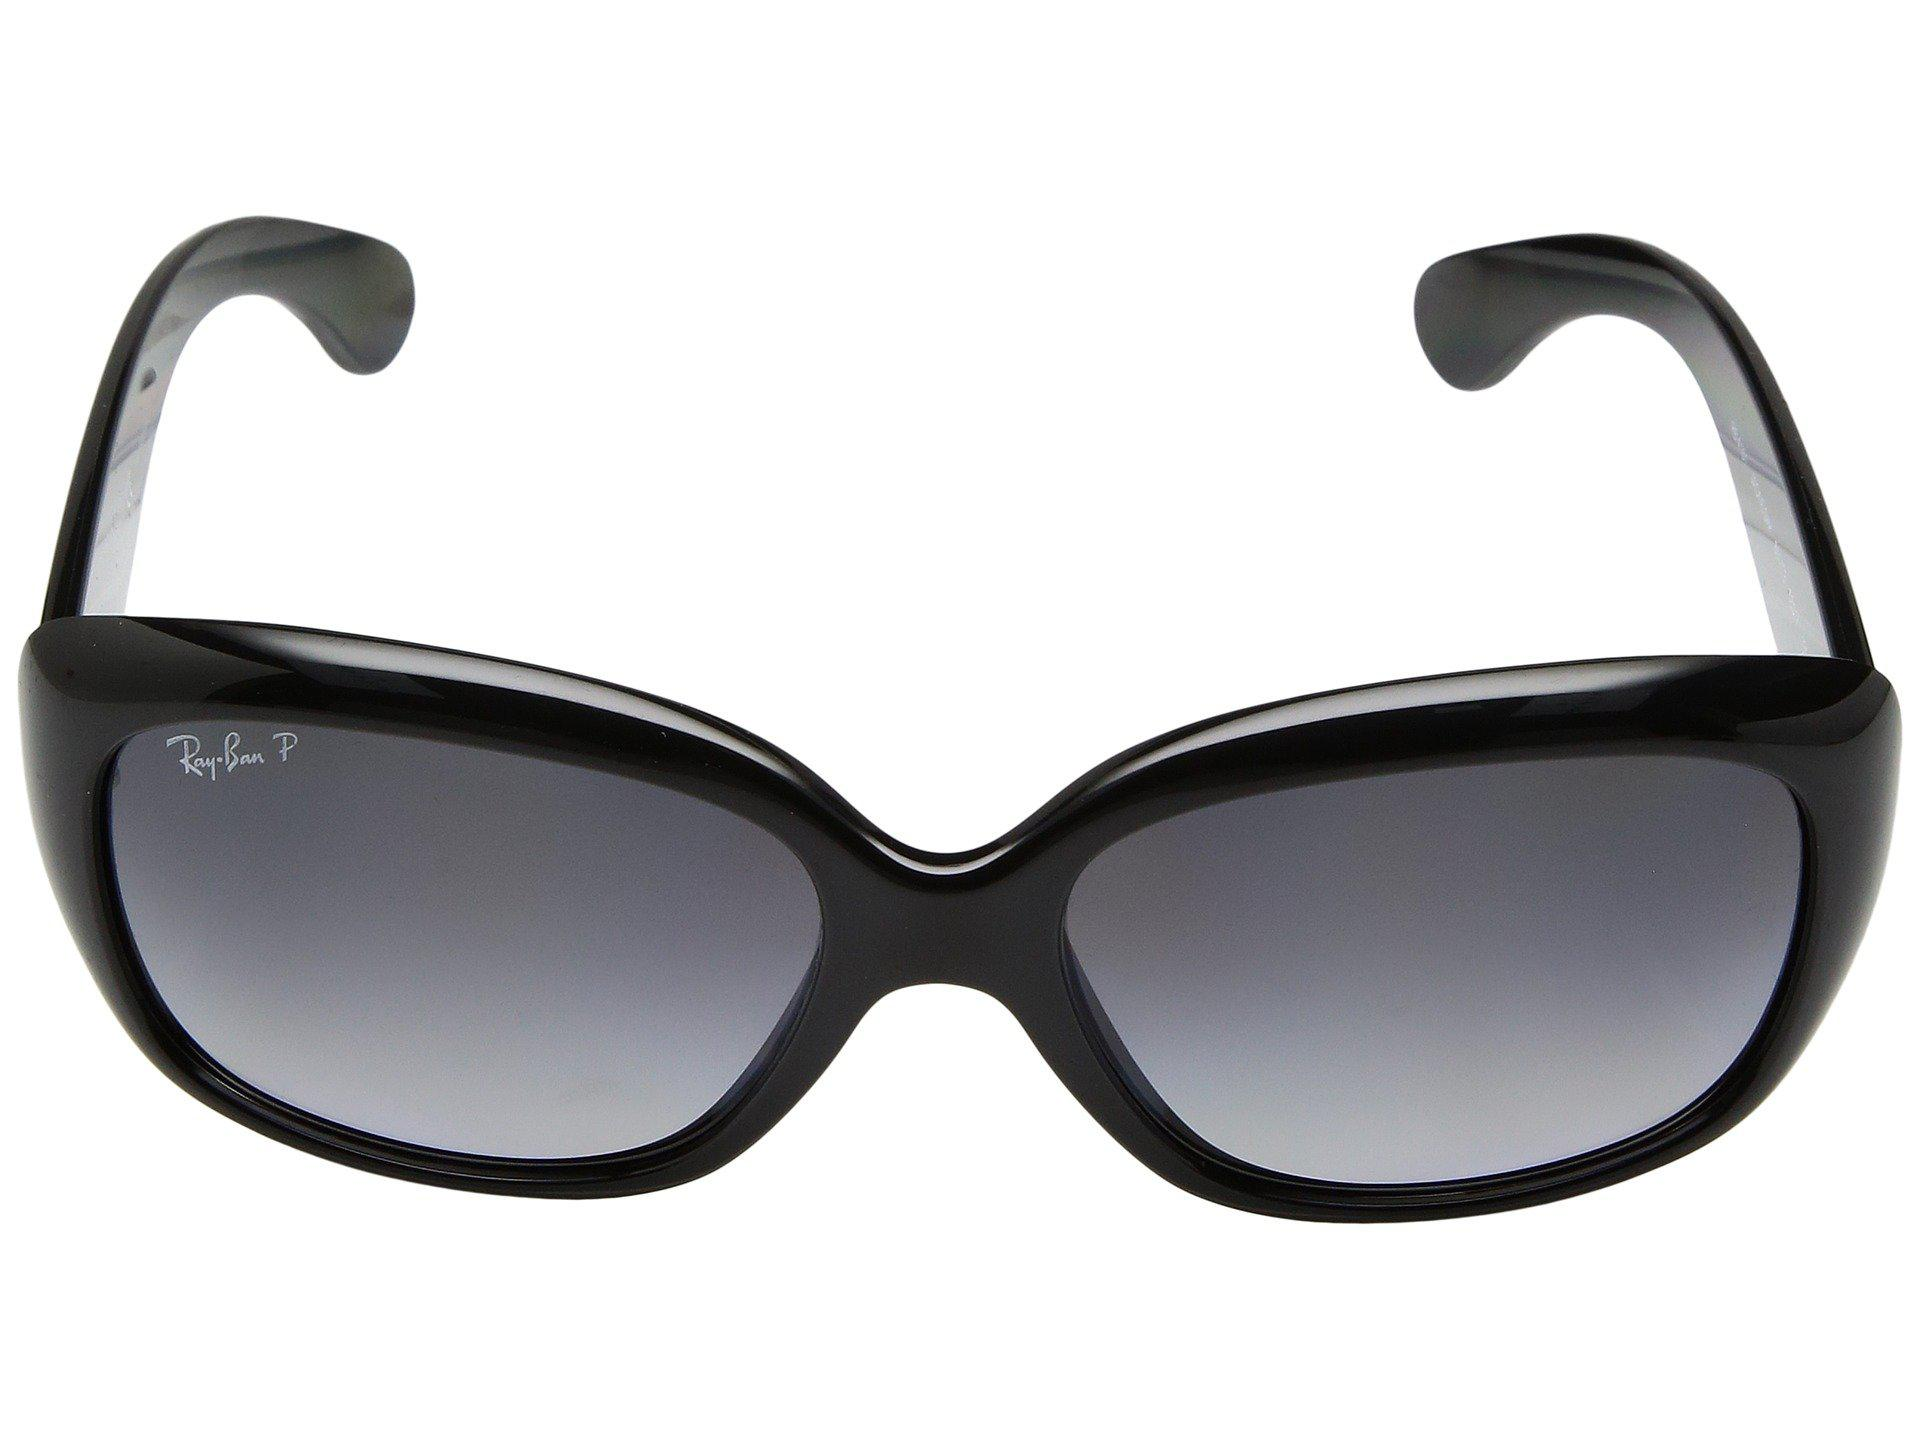 e2bad7ffeba Lyst - Ray-Ban Rb4101 Jackie Ohh Sunglasses in Black - Save 31%